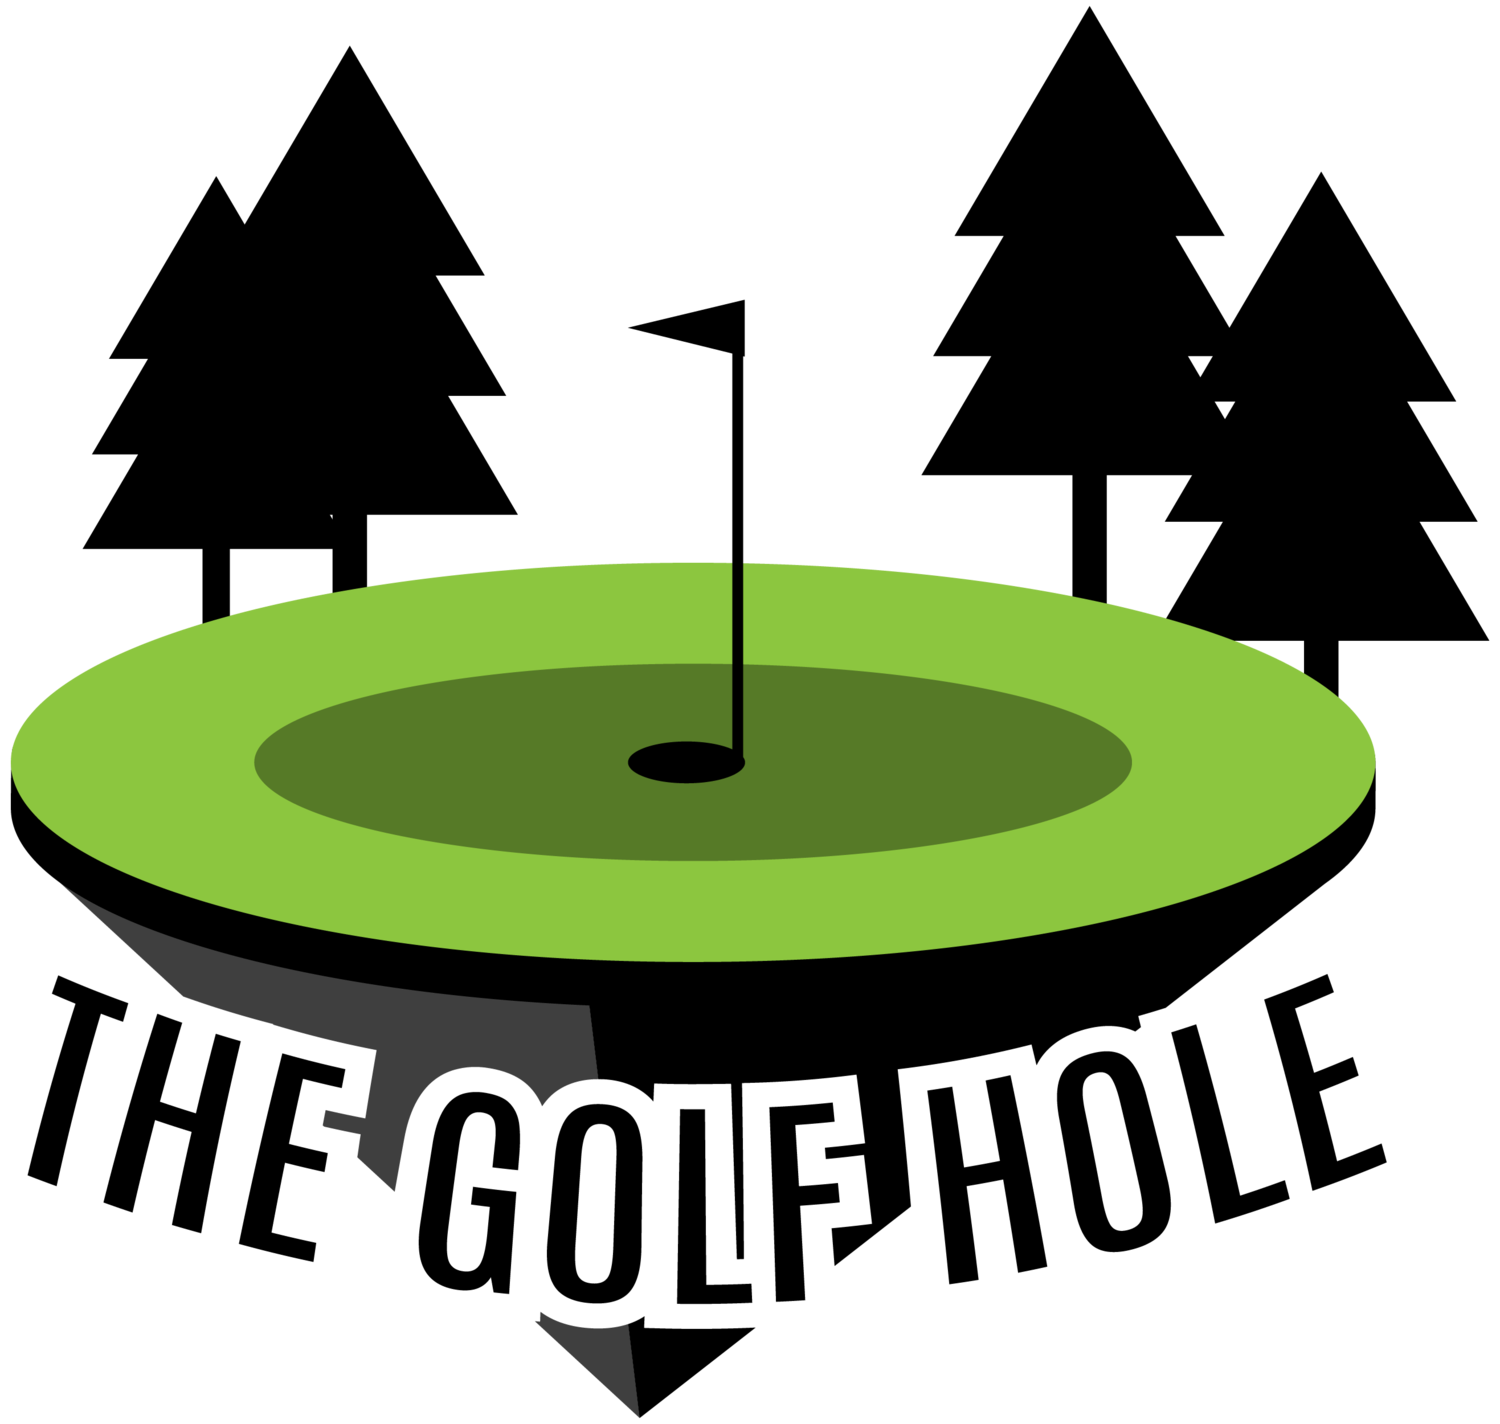 Golfing clipart hole in one. The golf